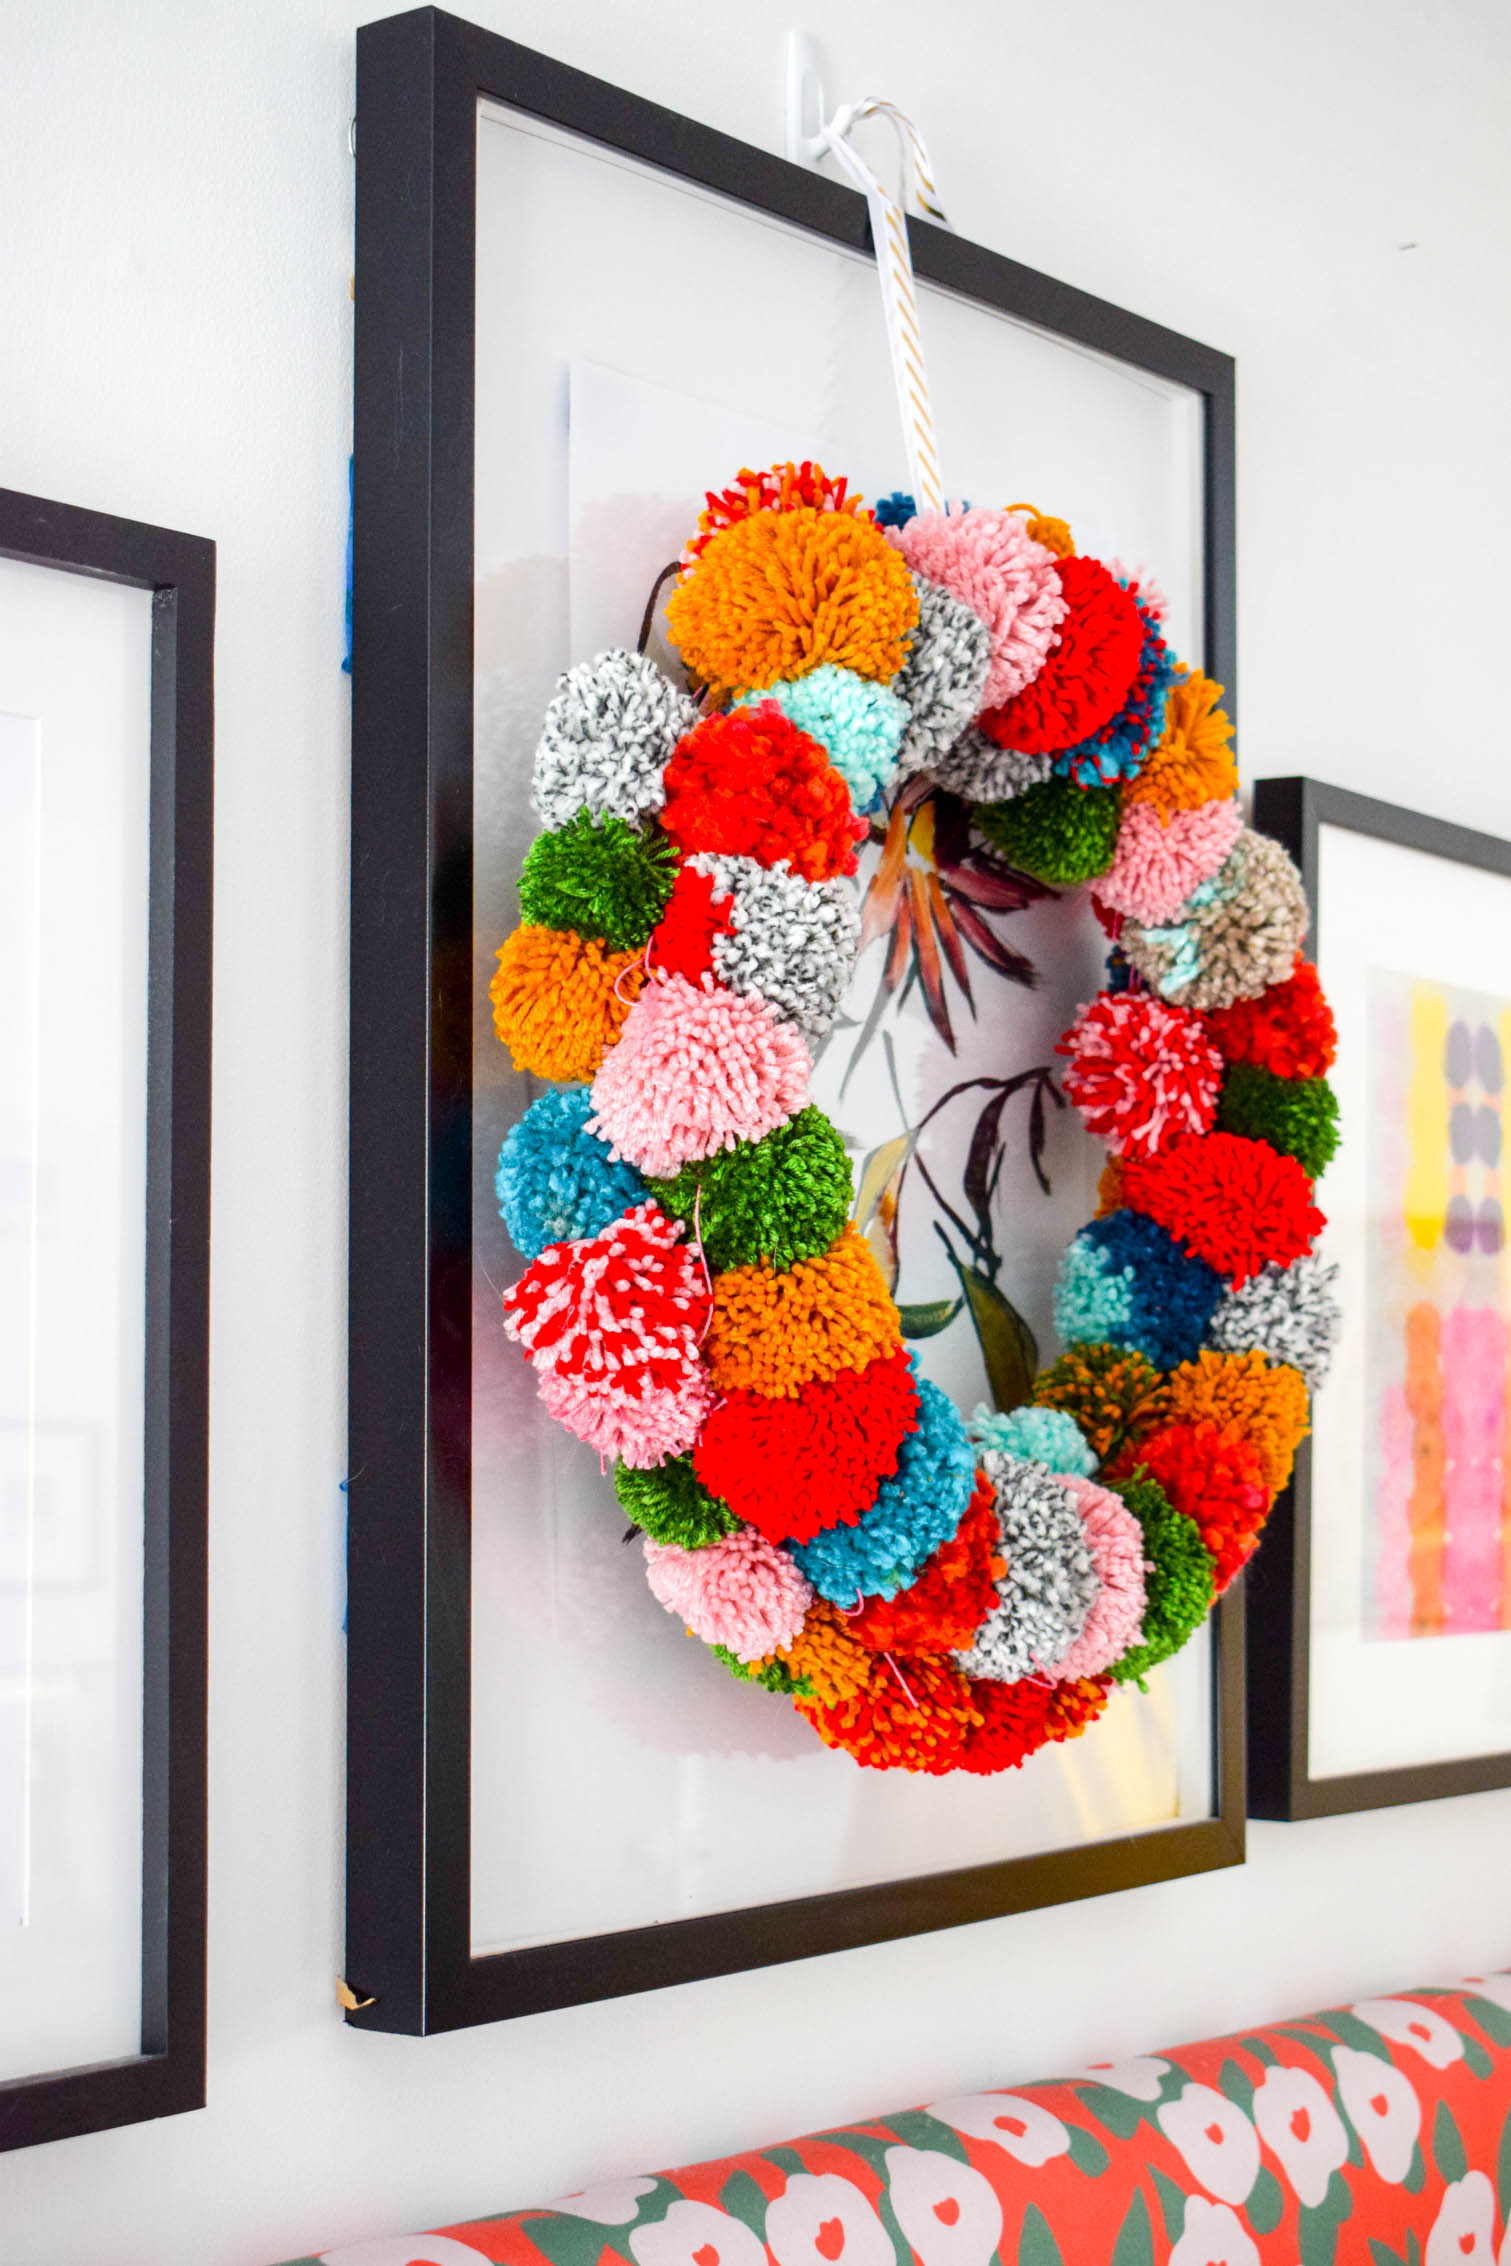 Make your own pom pom wreath this holiday season, and add a bold statement to your decor. This wreath is easy to make and a lot of fun to put together.